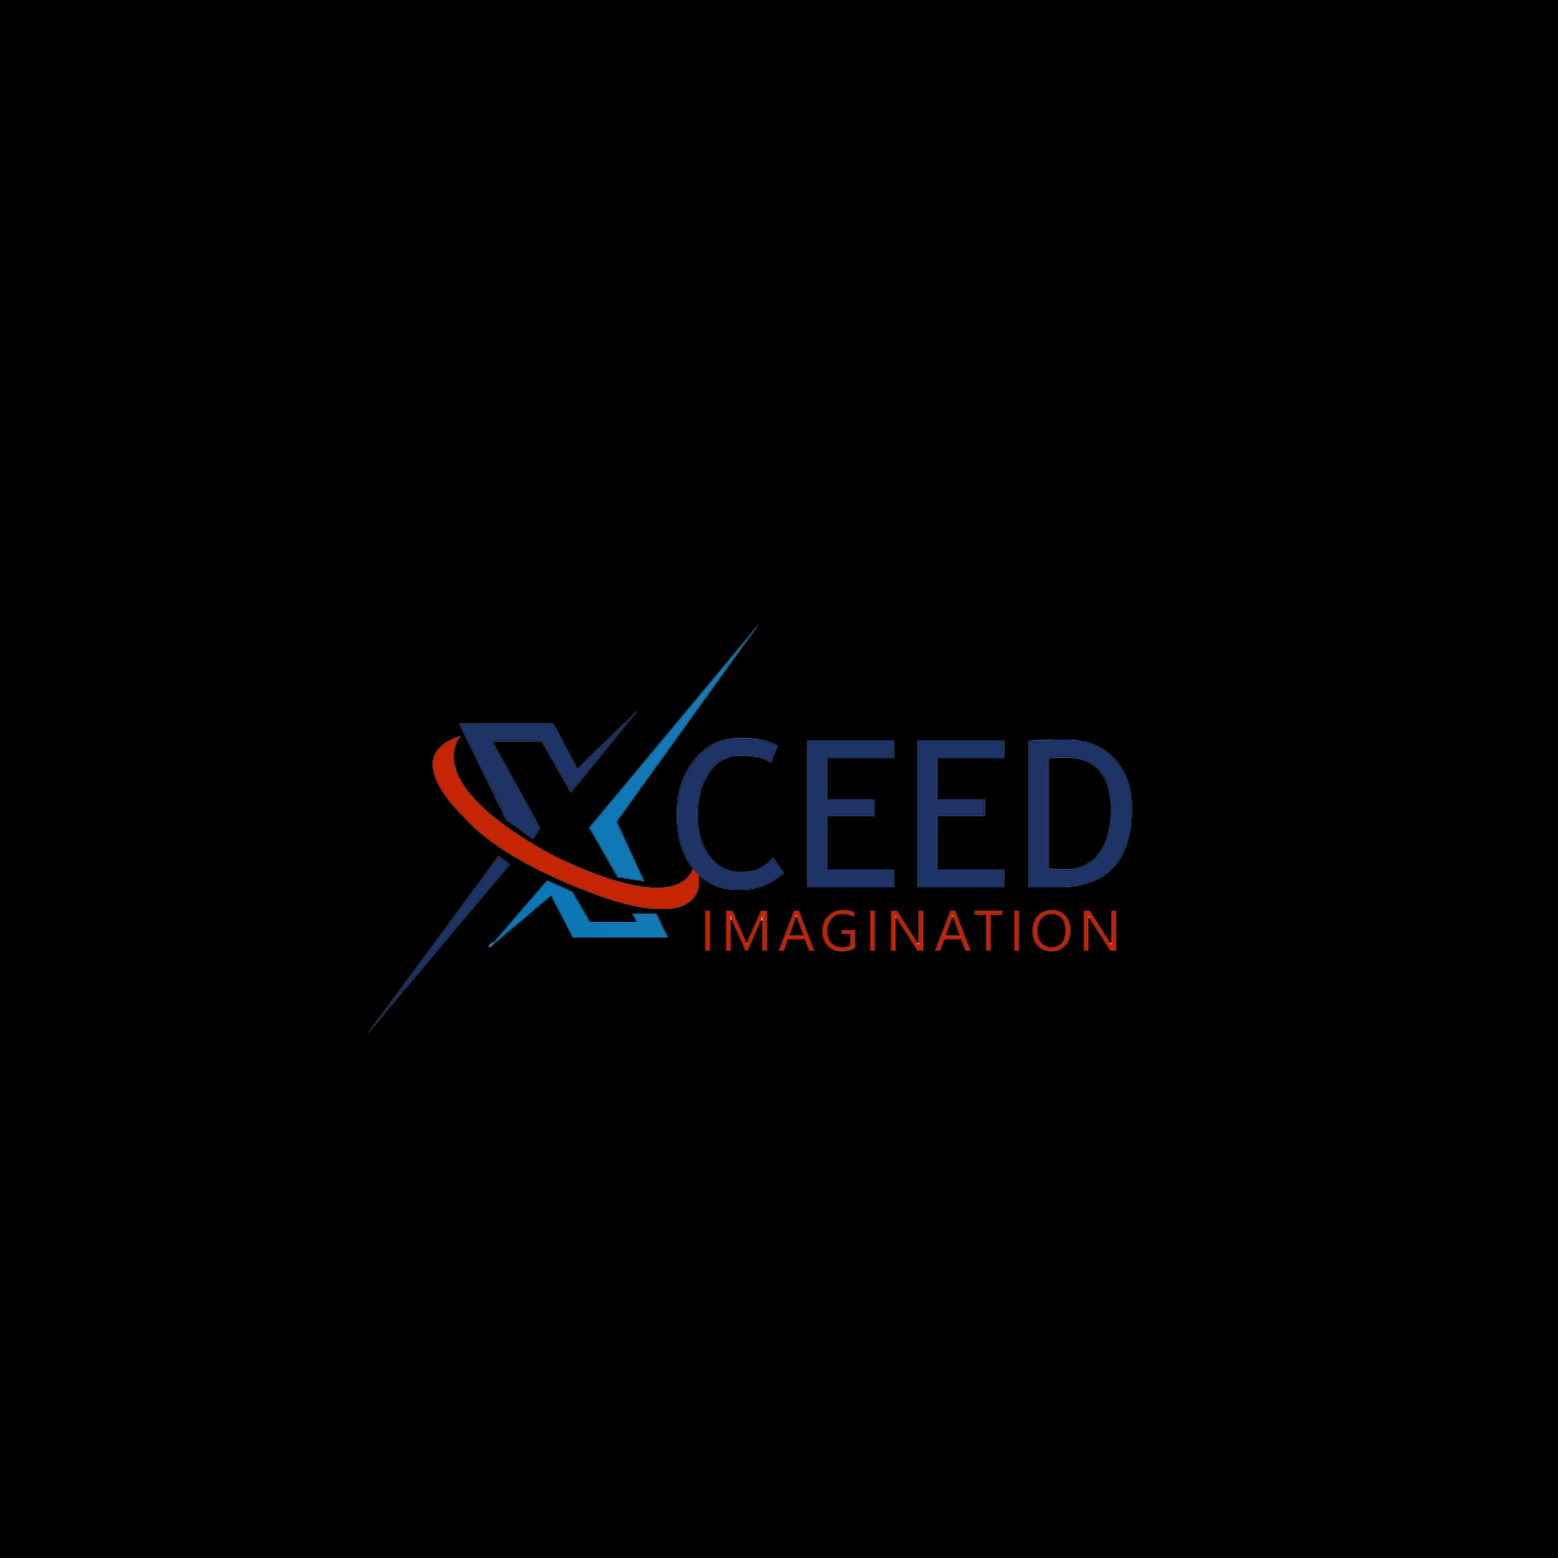 Xceed - Web and Mobile application development company